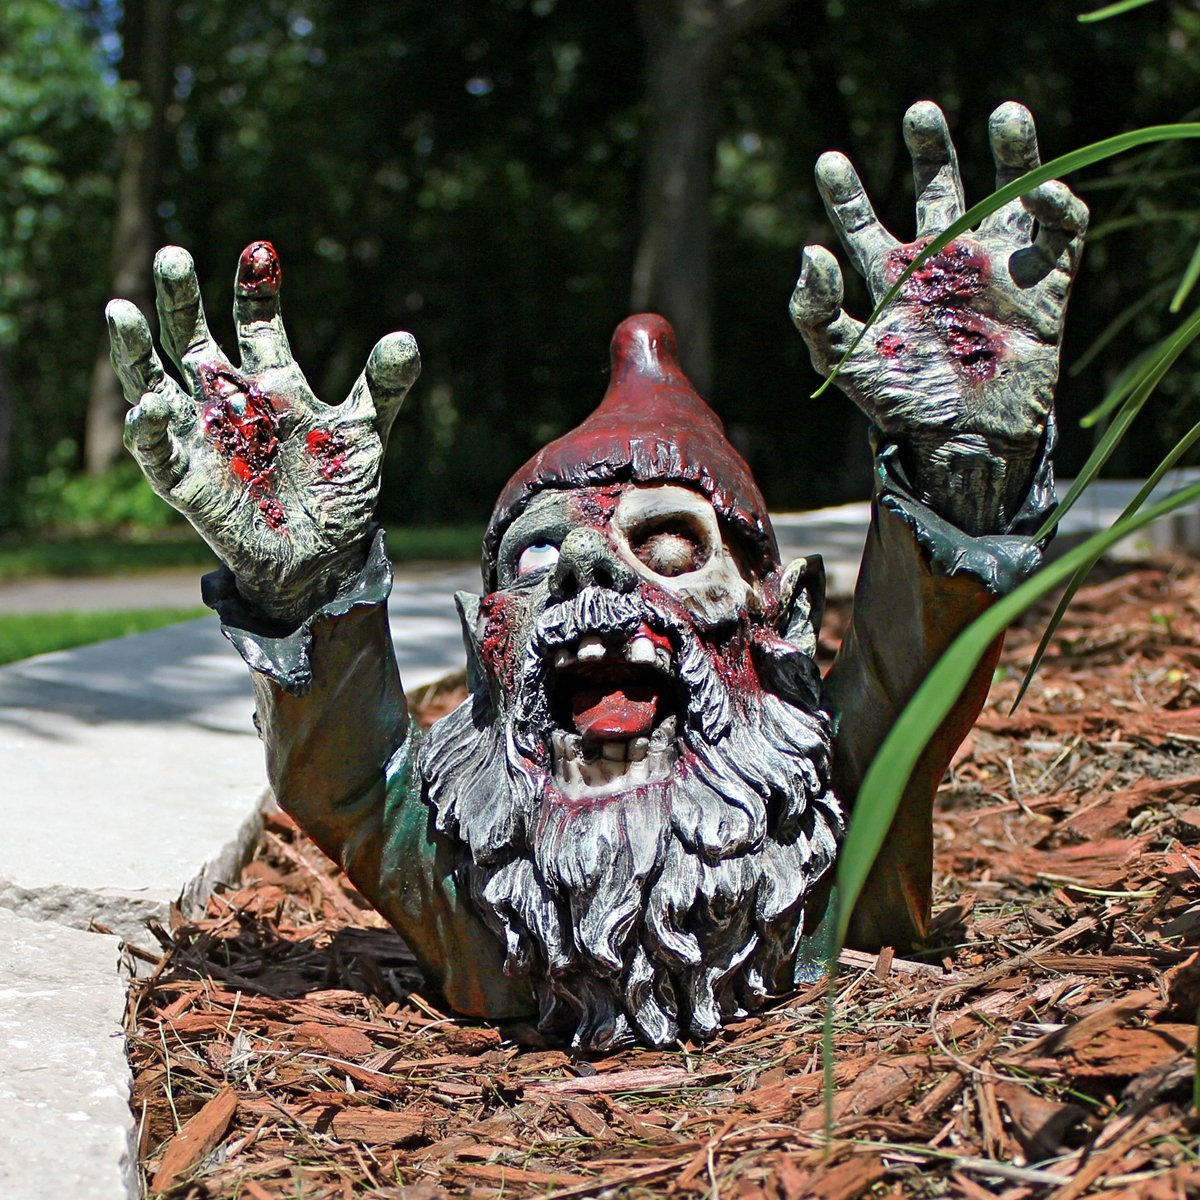 Gnome In Garden: Got Cash... Buy This! The Unique Online Mall